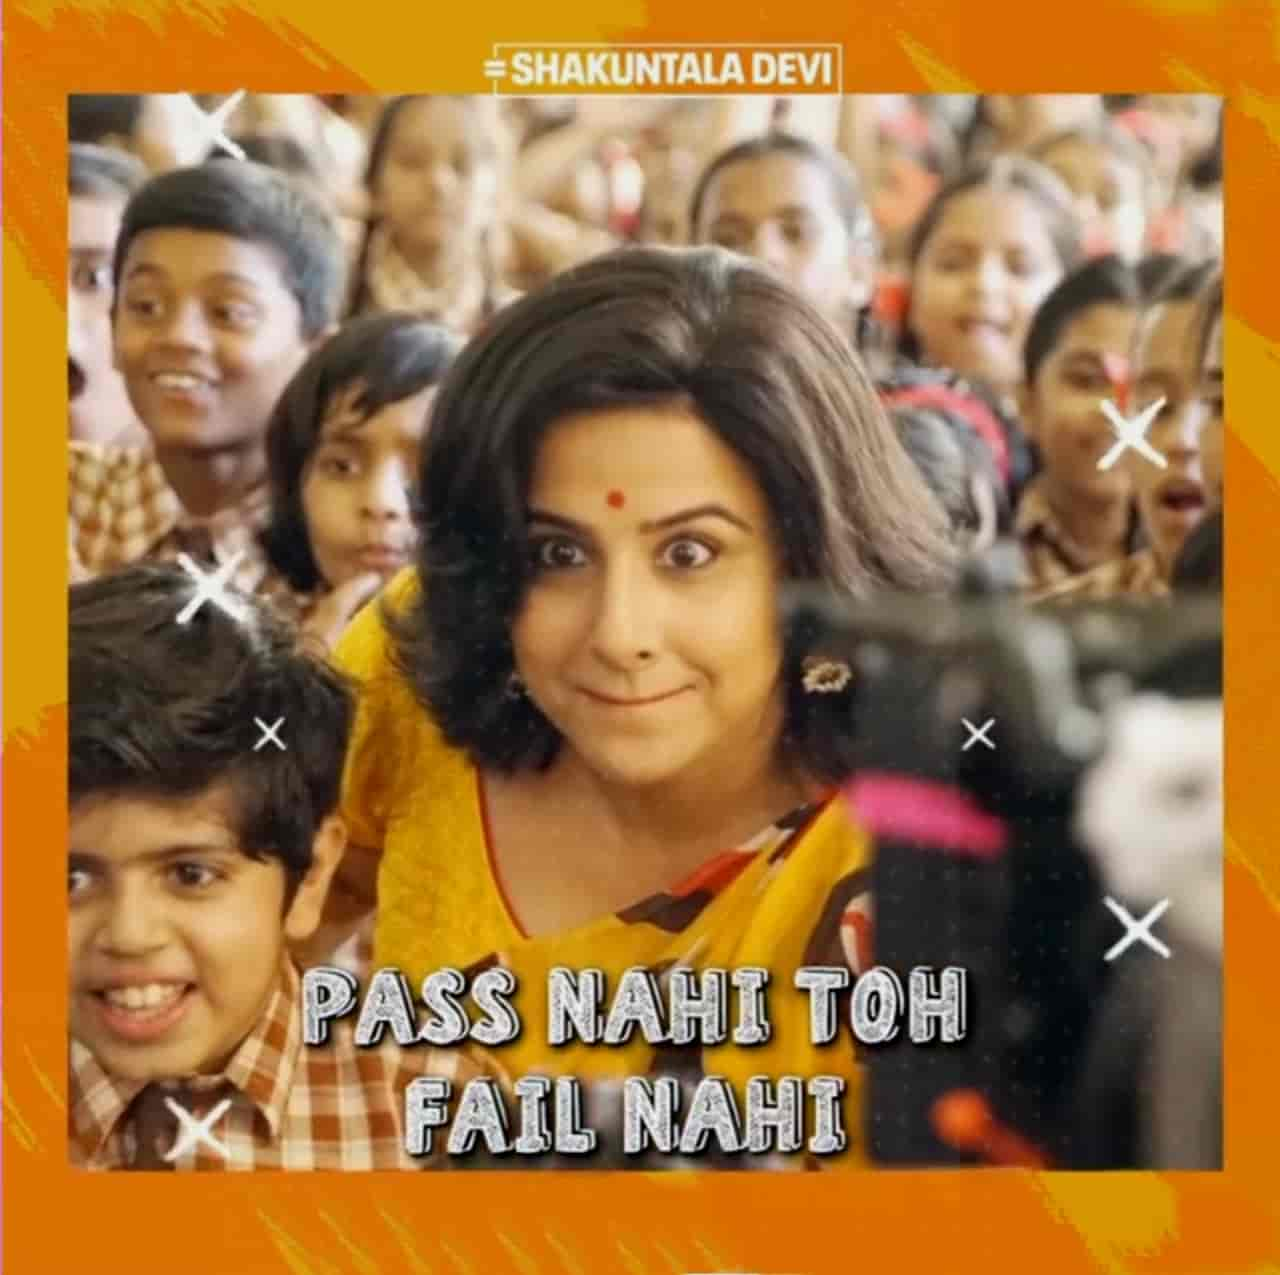 Pass Nahi Toh Fail Nahi Hindi Song Image From Movie Shakuntala Devi Features Vidya Balan